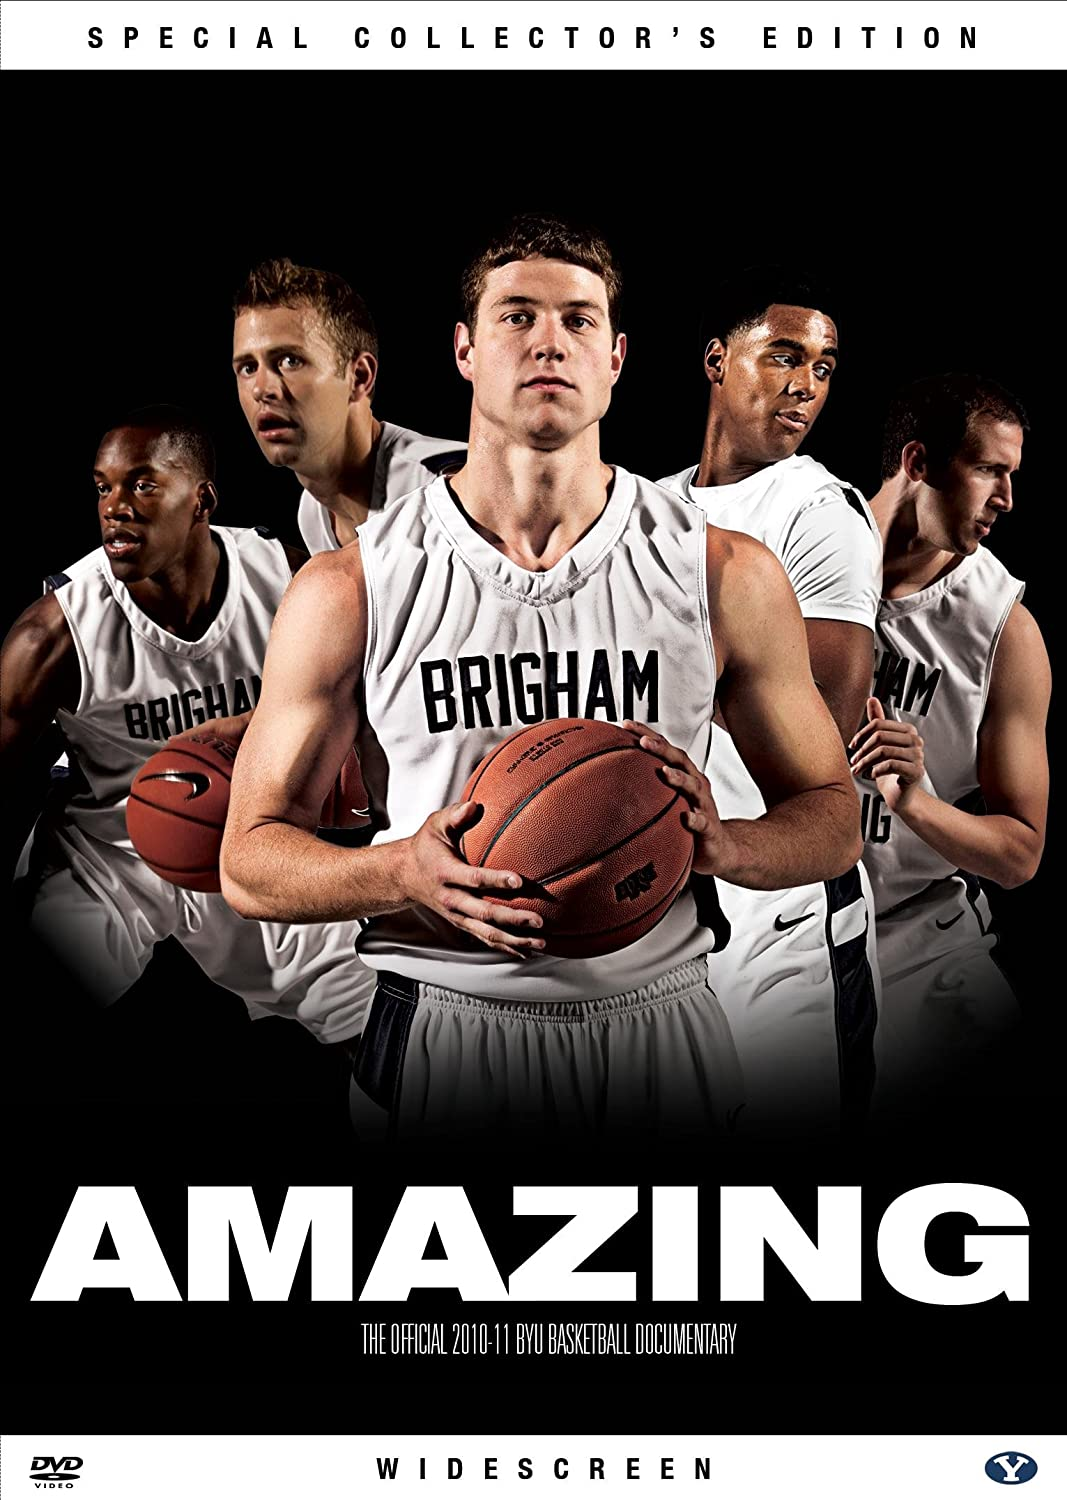 Amazon.com: Amazing: The Official 2010-11 BYU Basketball Documentary: Jimmer Fredette, Coach Dave Rose, Dick Vitale, Jackson Emery, Jonathan Howe: Movies & ...